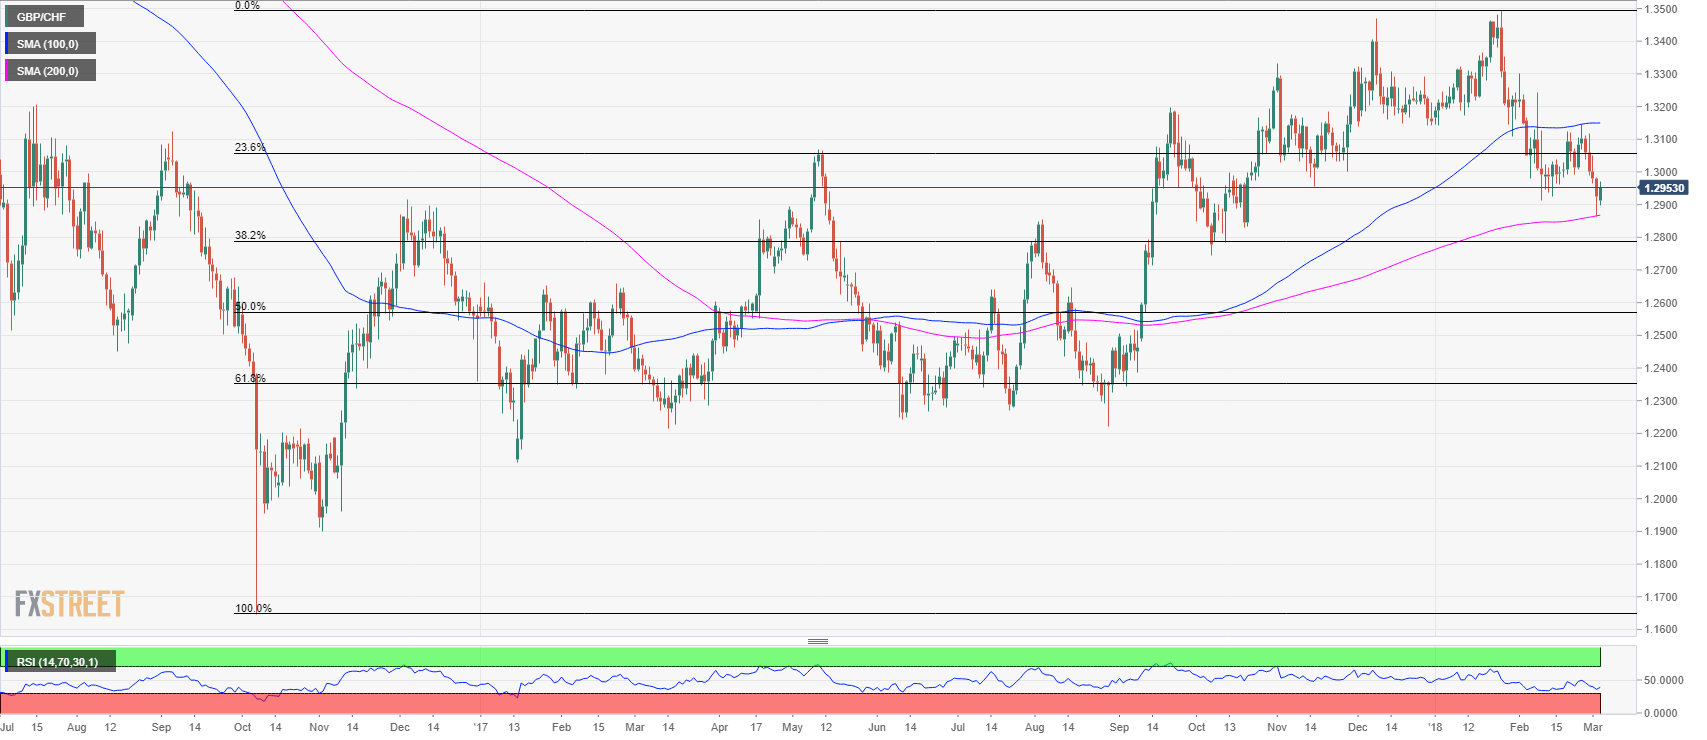 CHF (Swiss Franc) - Latest News, Analysis and Forex Trading Forecast